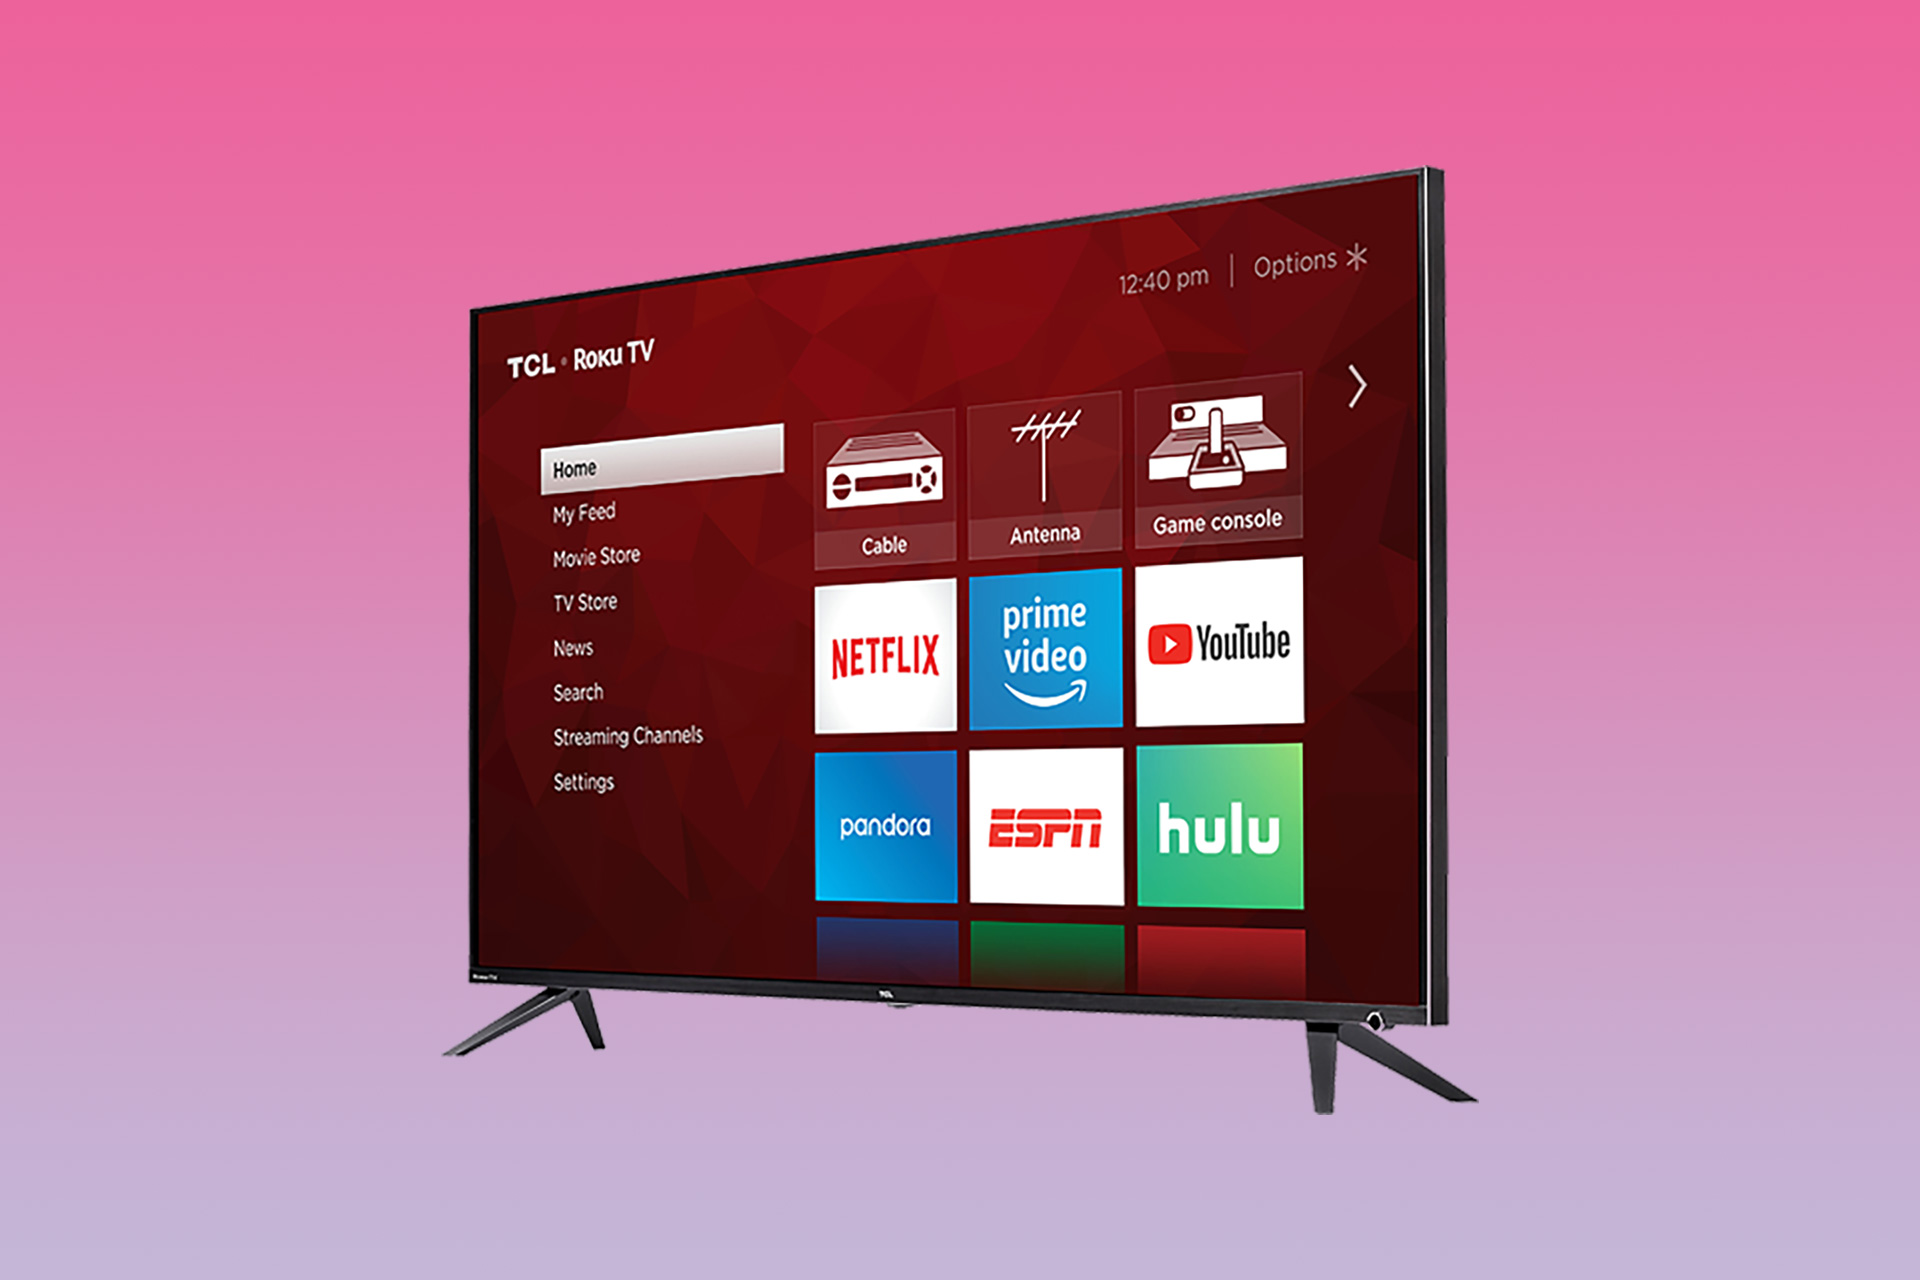 TCL's excellent 6-Series 4K TV finally gets a major discount